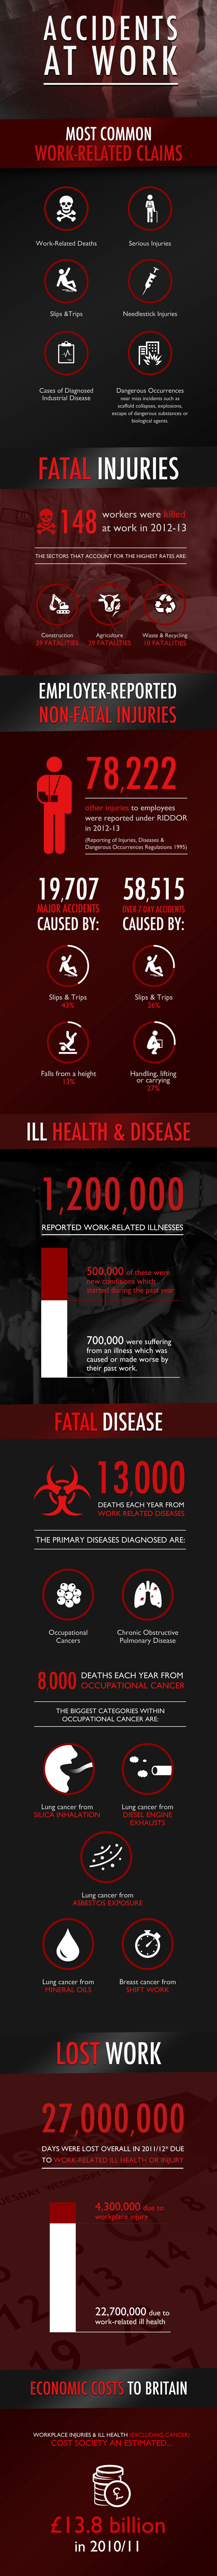 Accidents and Injuries at work, the statistics